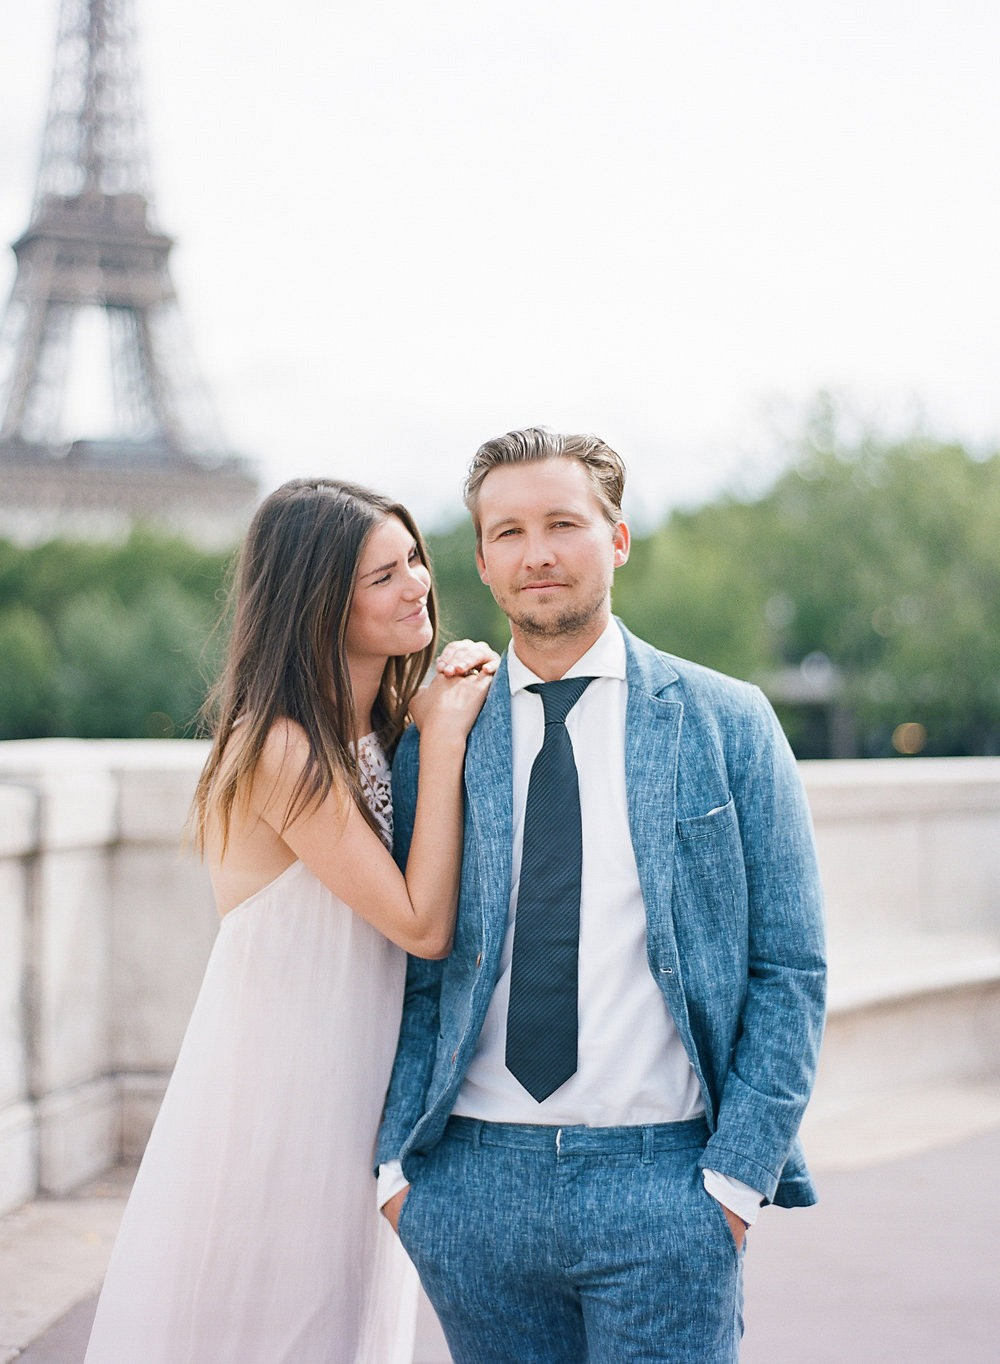 A Parisian couples' session